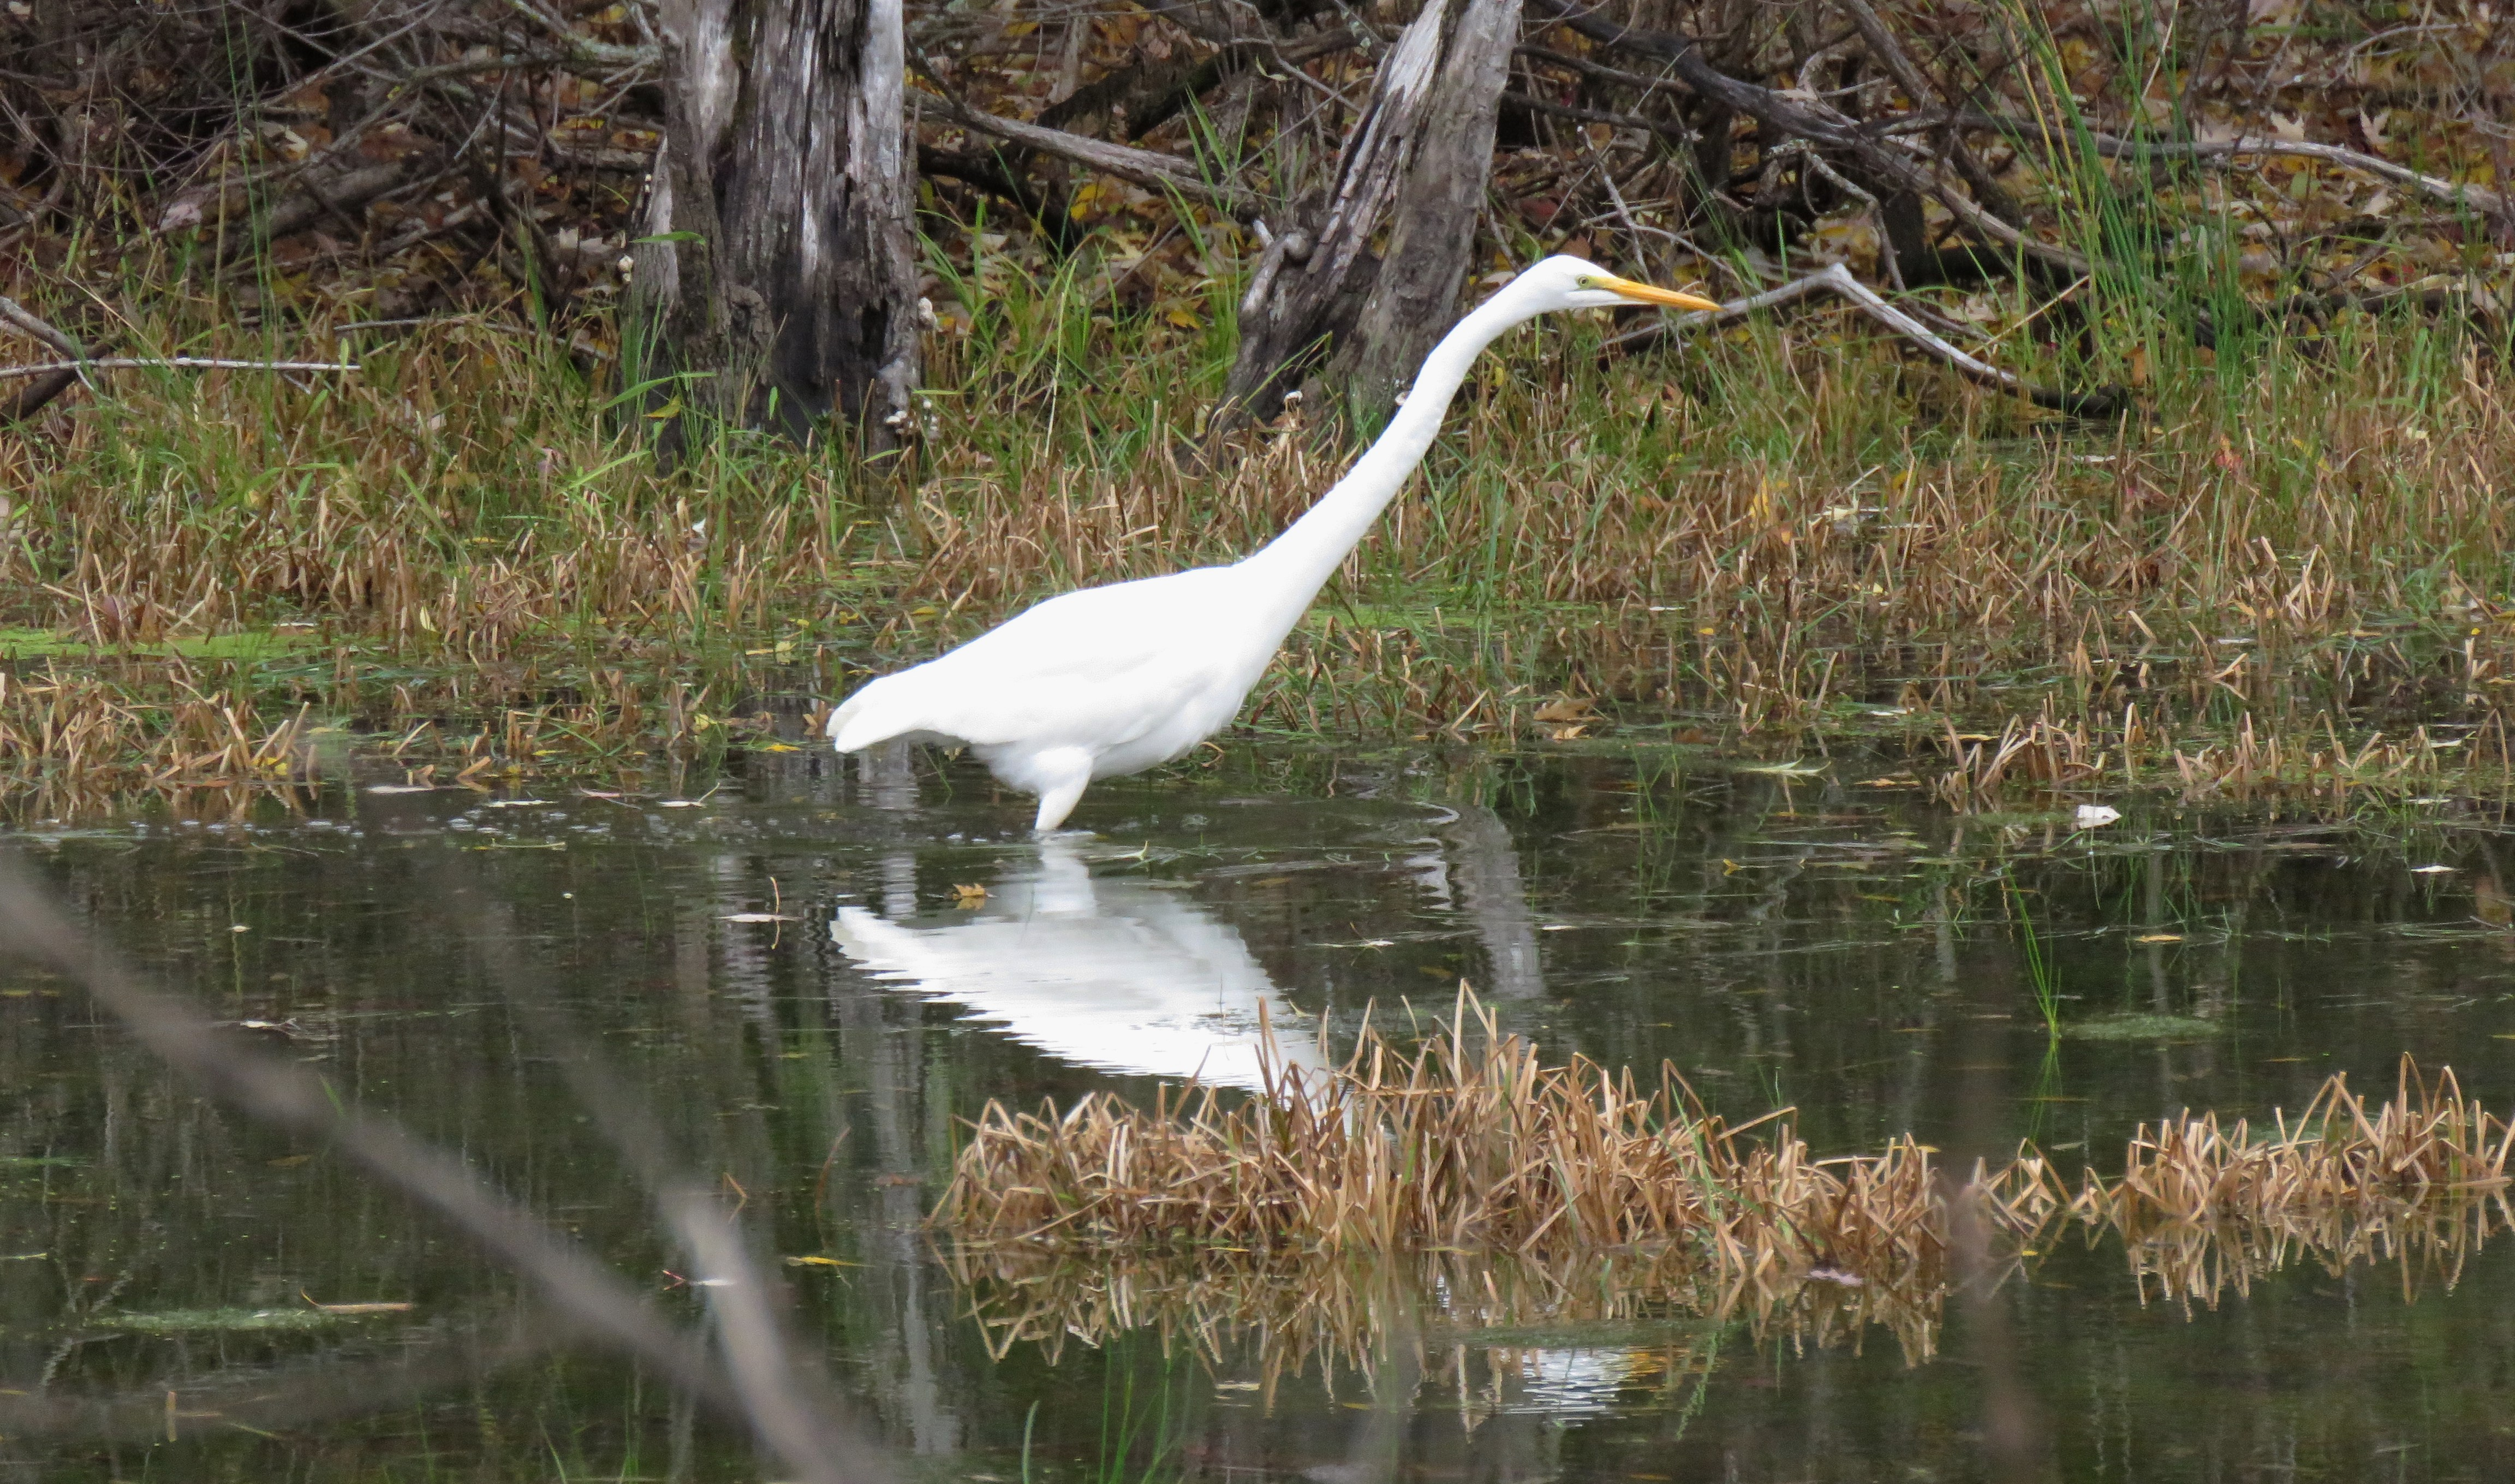 A Great Egret stands still in shallow water, stalking fish